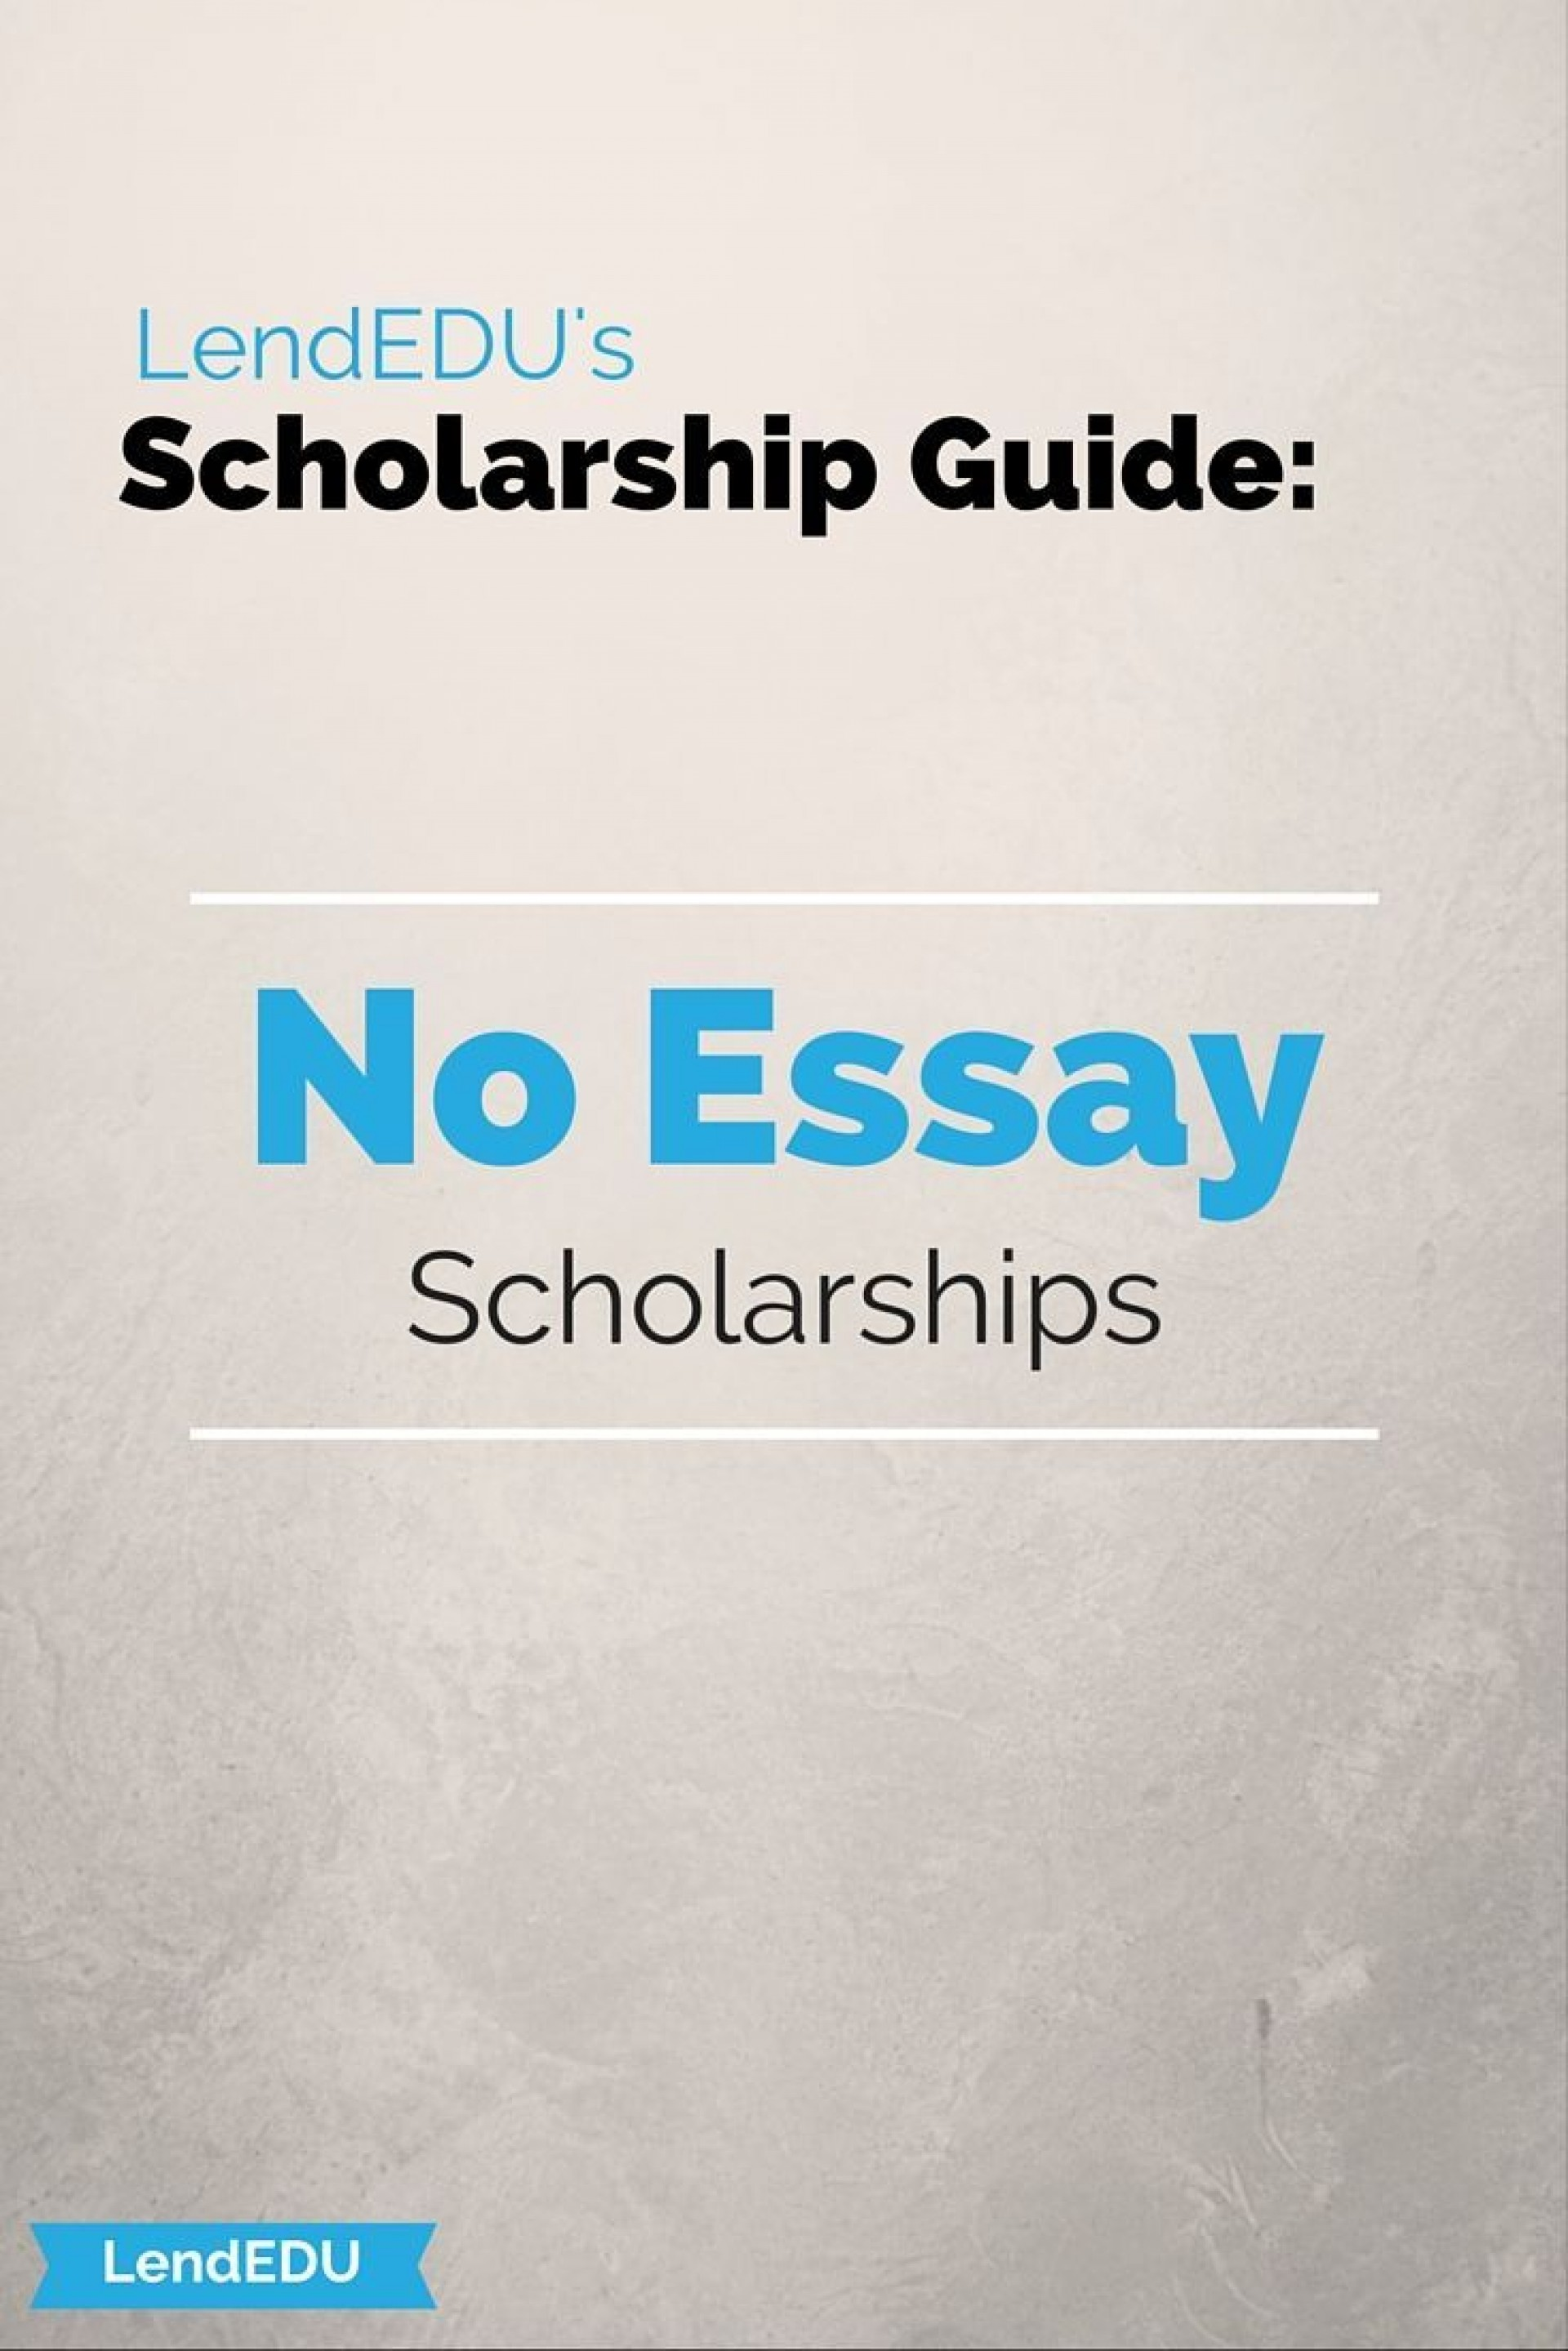 009 Essay Example Non Imposing Scholarships No For High School Seniors 2019 College Students 2017 1920